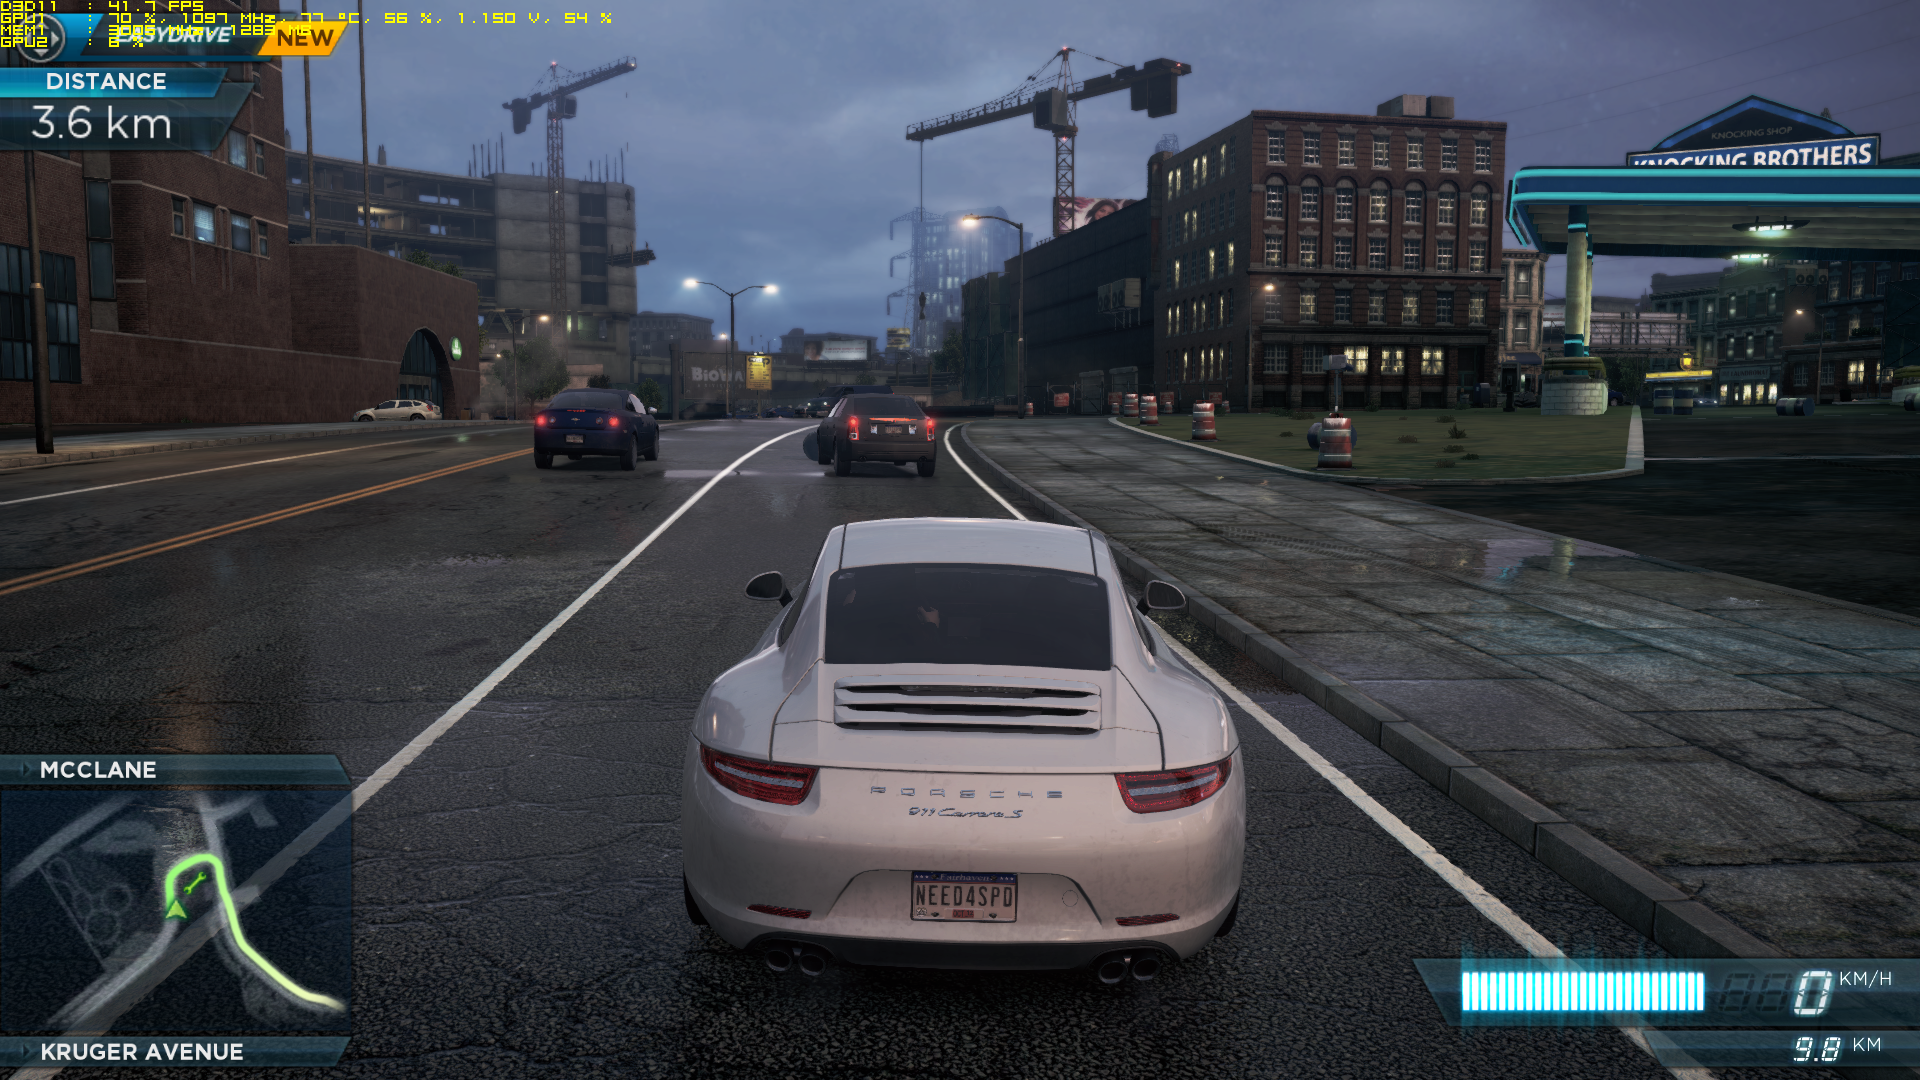 Need For Speed Most Wanted - PC Performance Thread | NeoGAF